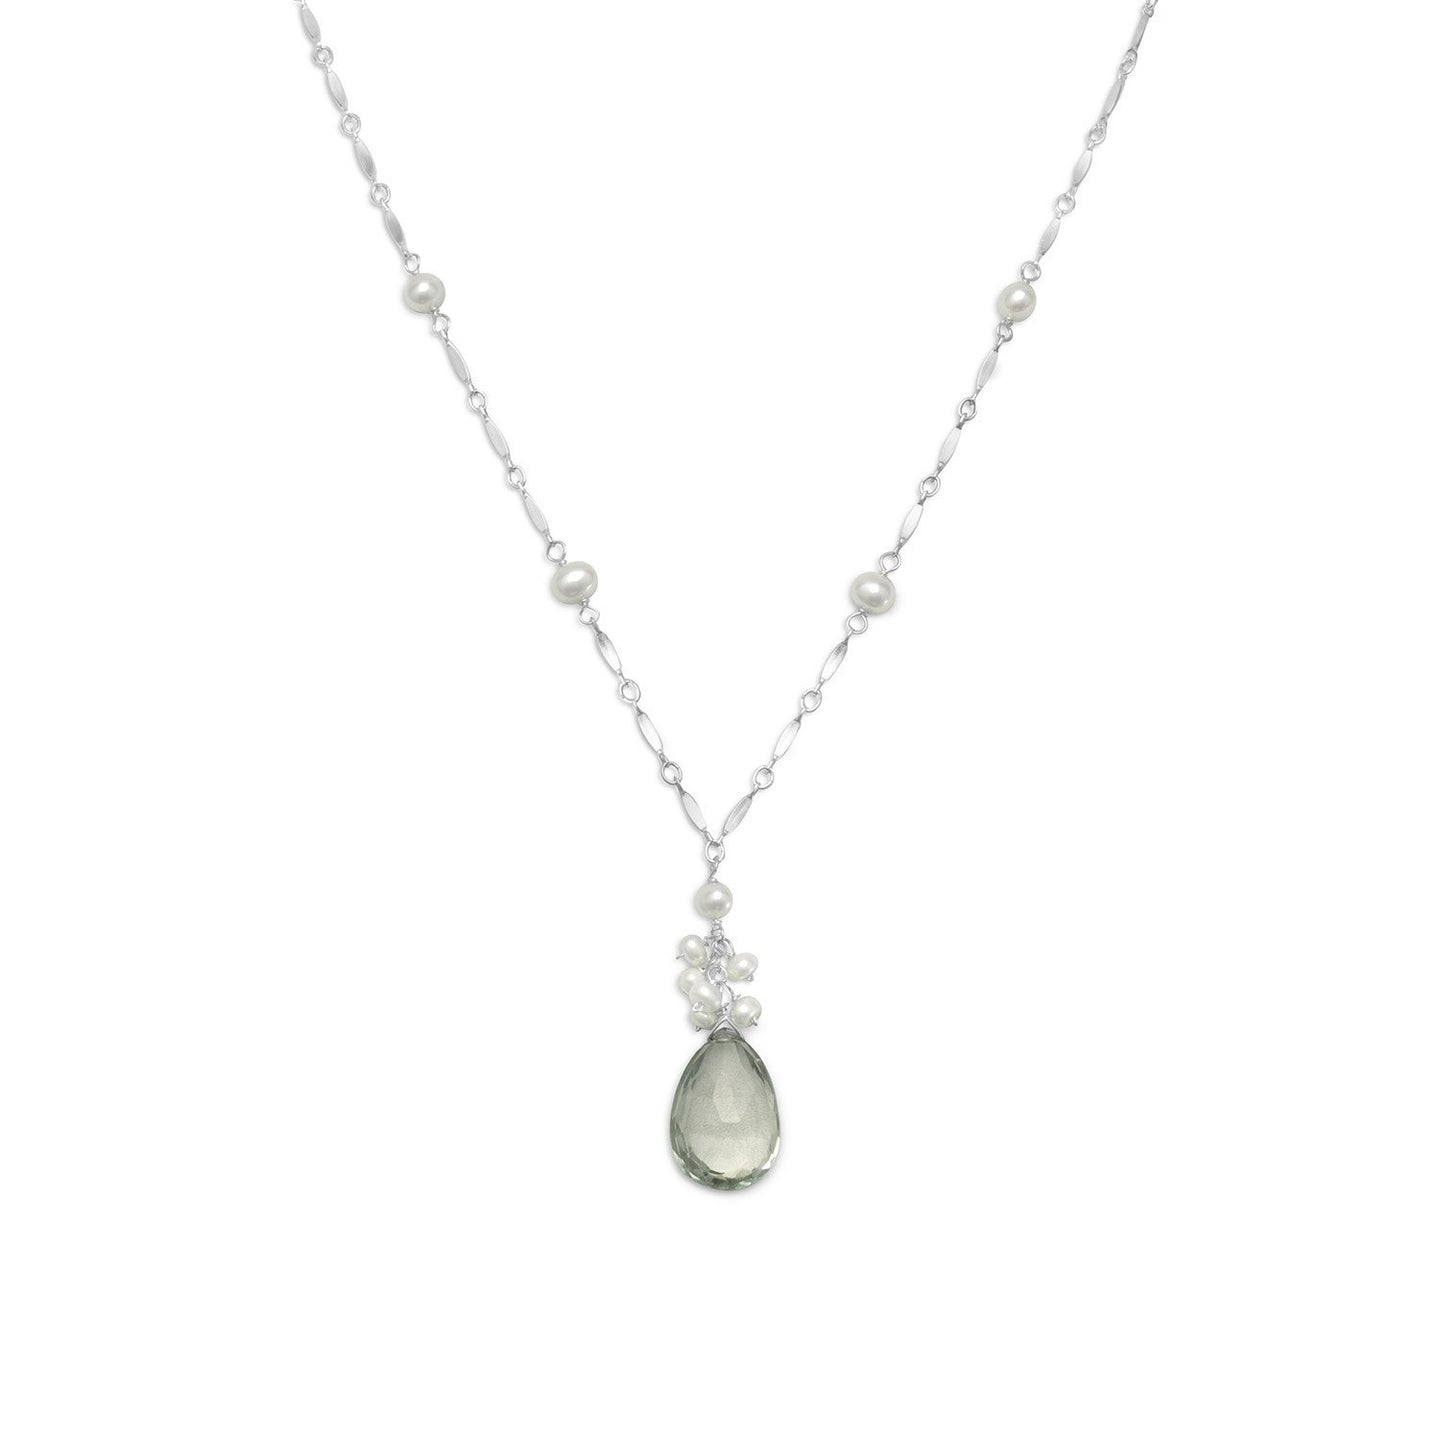 Prasiolite and Cultured Freshwater Pearl Necklace at 3 Barn Swallows, $107